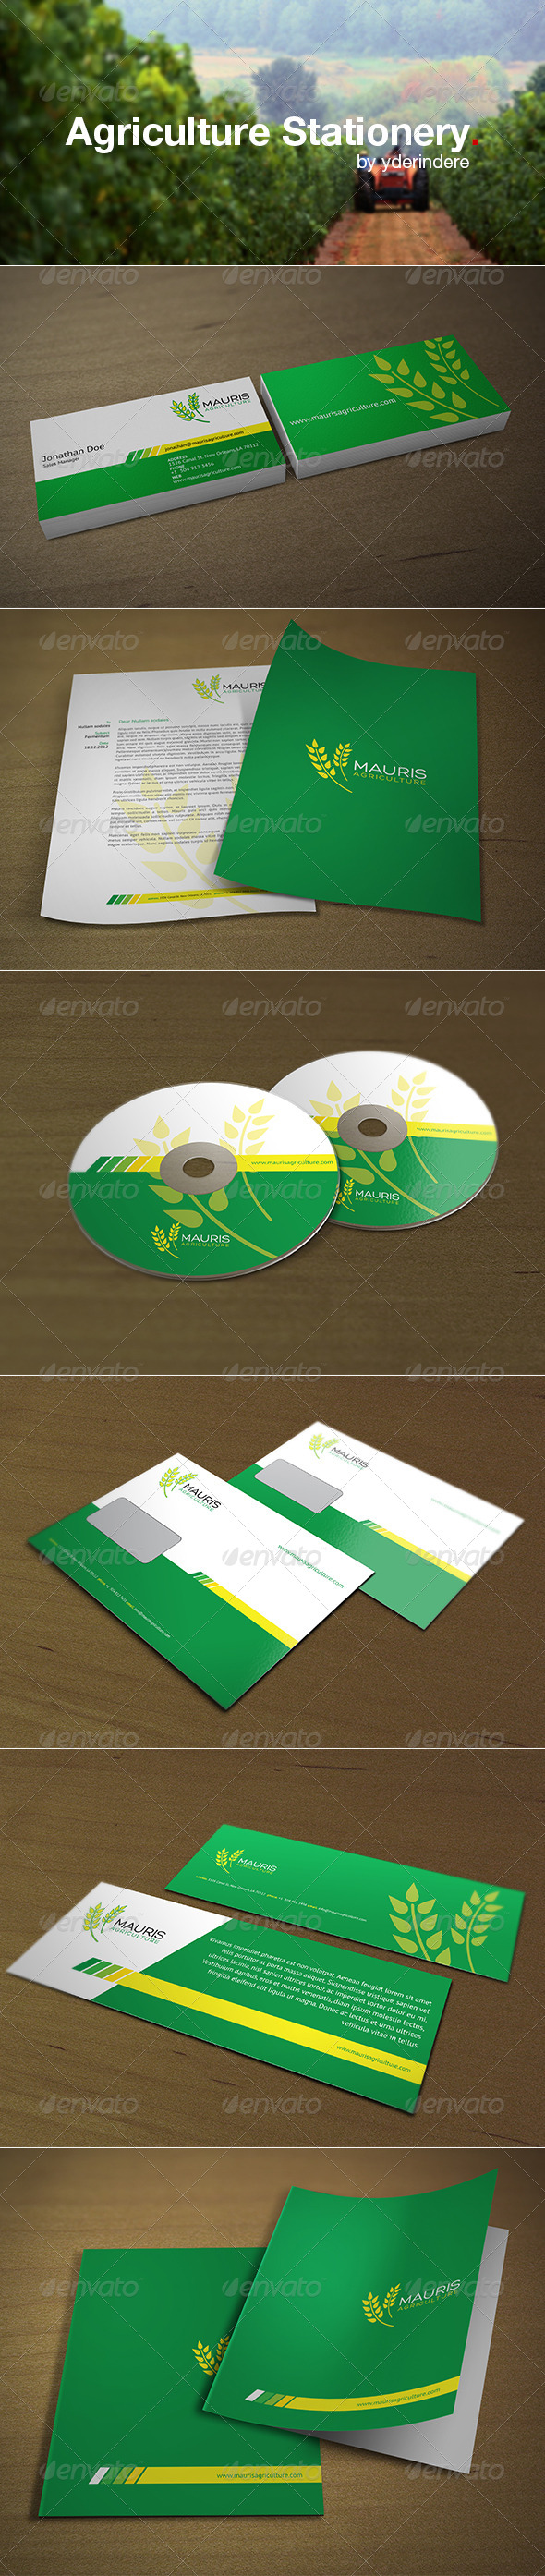 Agriculture Corporate Identity - Stationery Print Templates